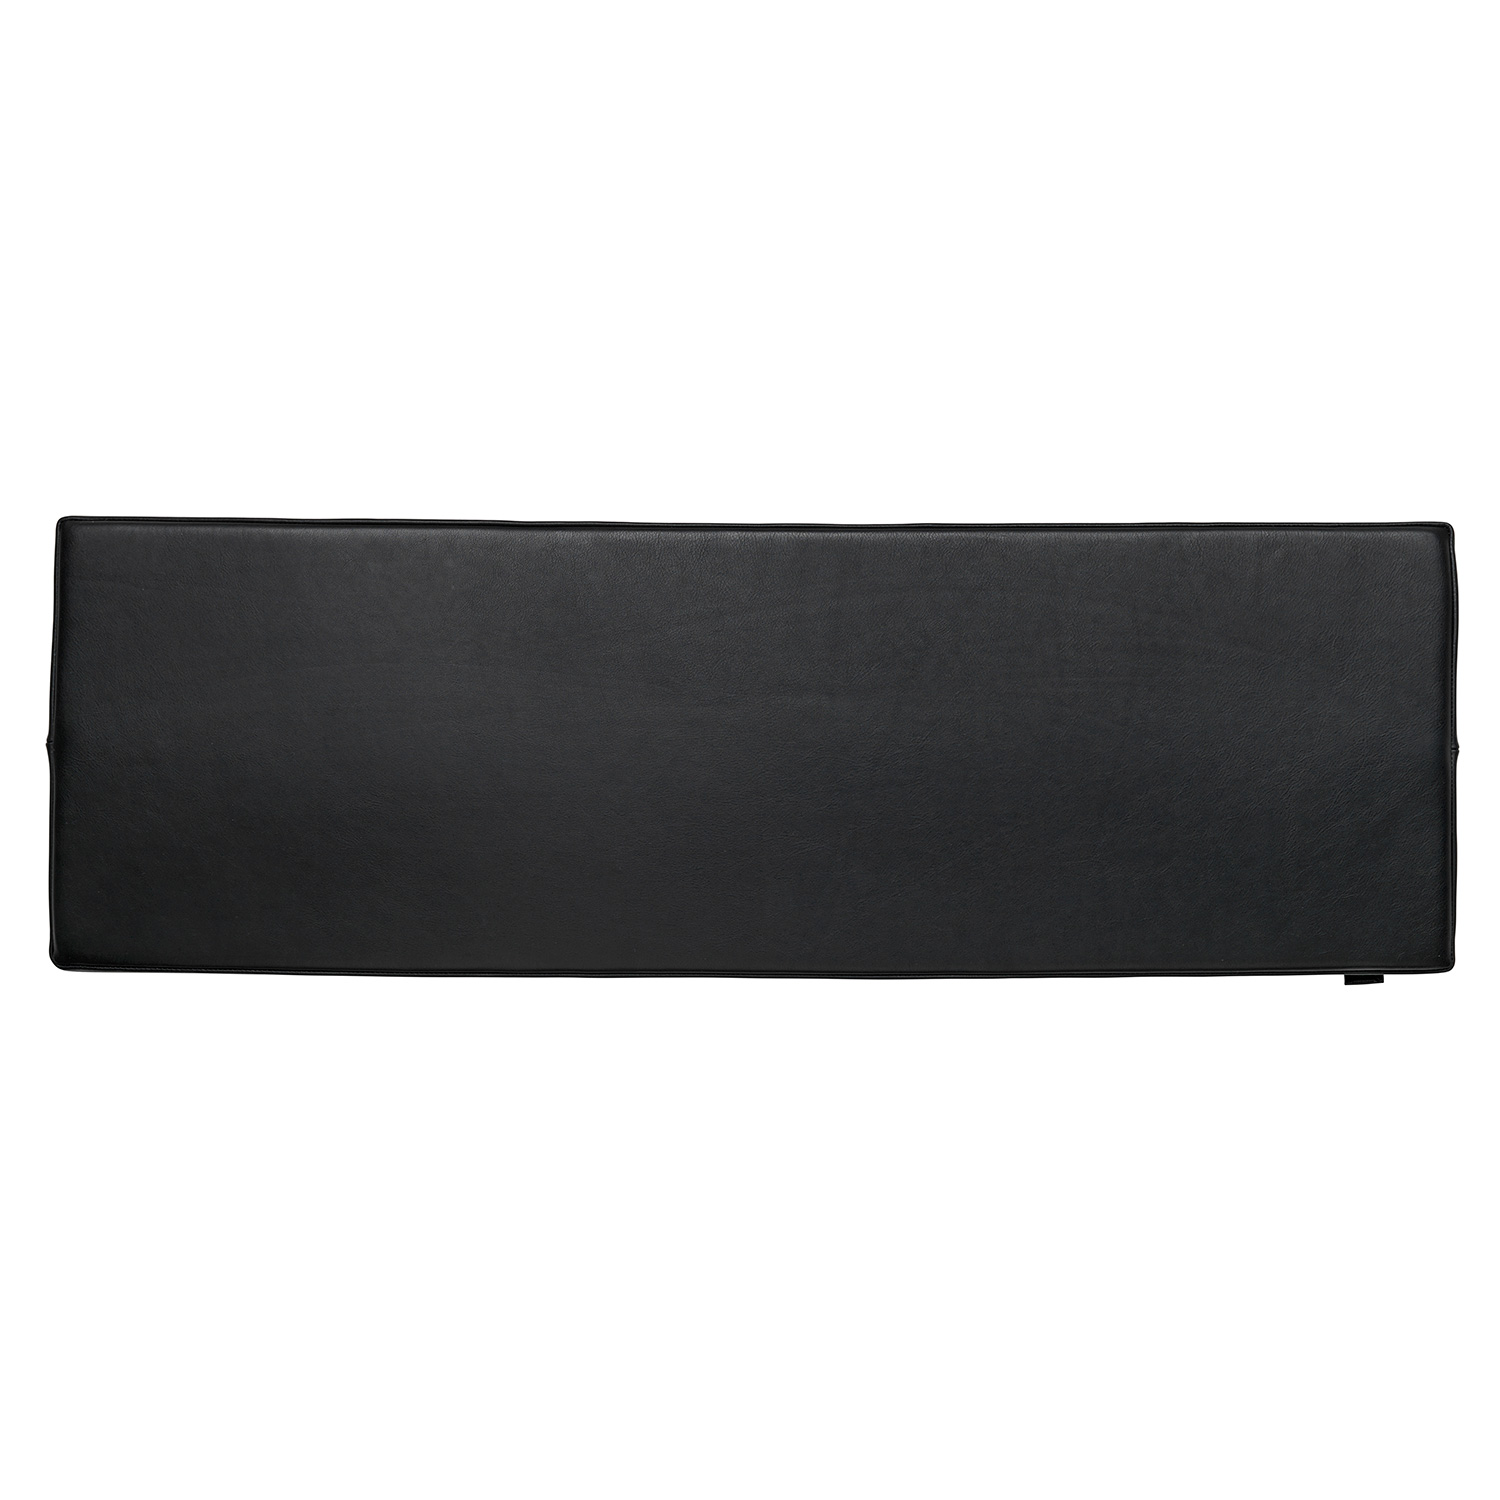 Conekt Seat Cushion, Black Leather